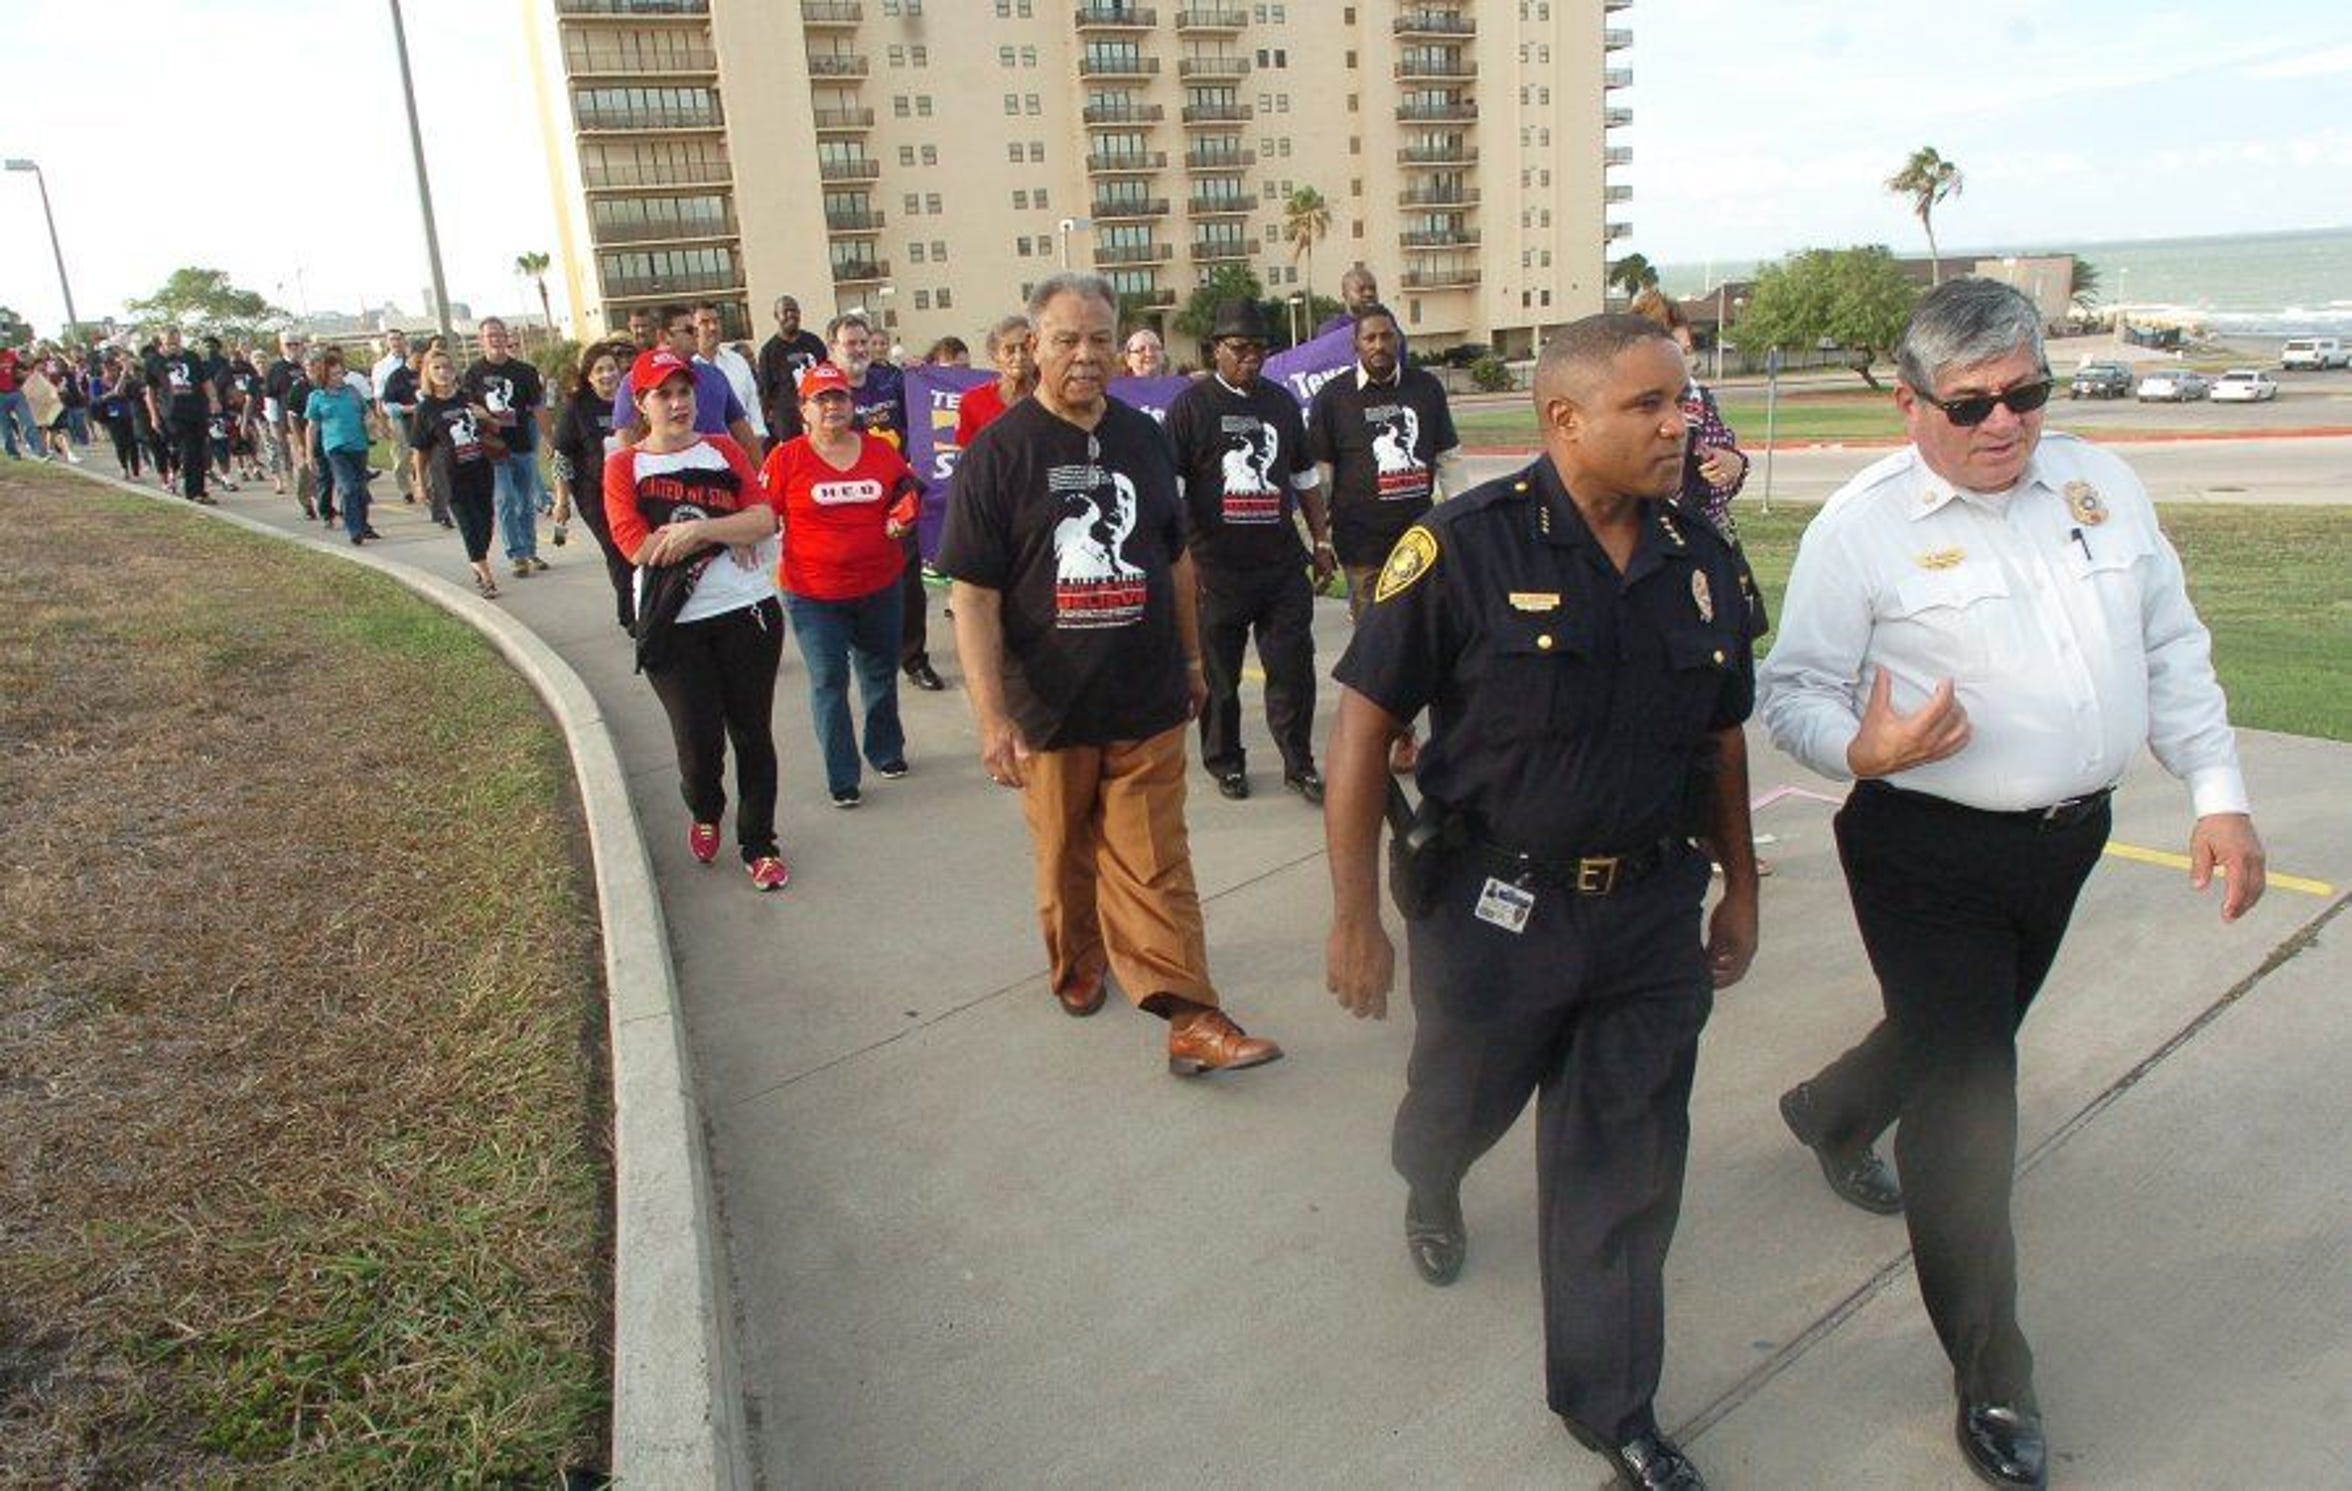 Corpus Christi Police Chief Floyd Simpson (left) and Corpus Christi Fire Chief Robert Rocha walk in the United We Stand march commemorating Dr. Martin Luther King's 'I Have A Dream' speech. Simpson was the city's first black police chief. He died in 2015.